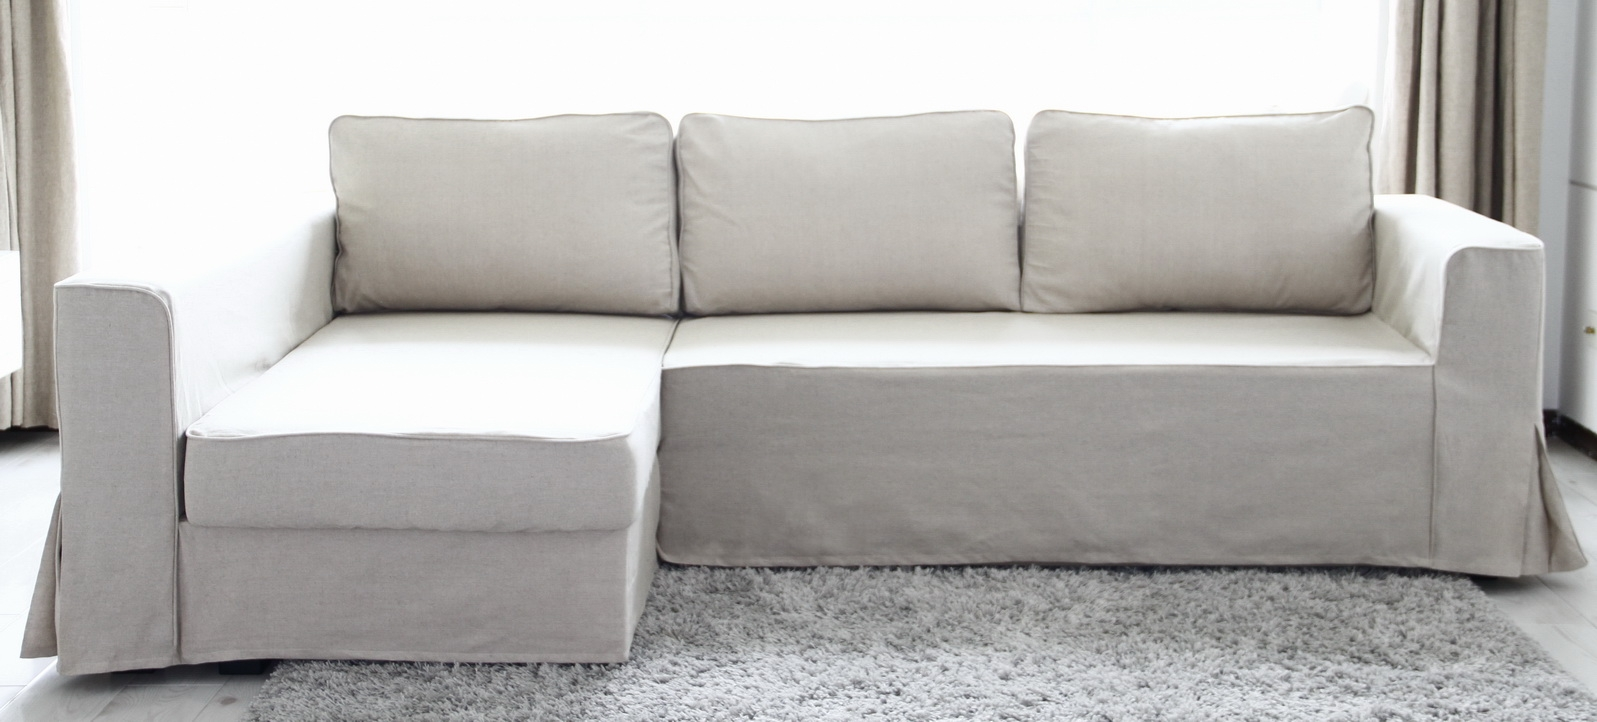 Popular Photo of Chaise Sofa Covers